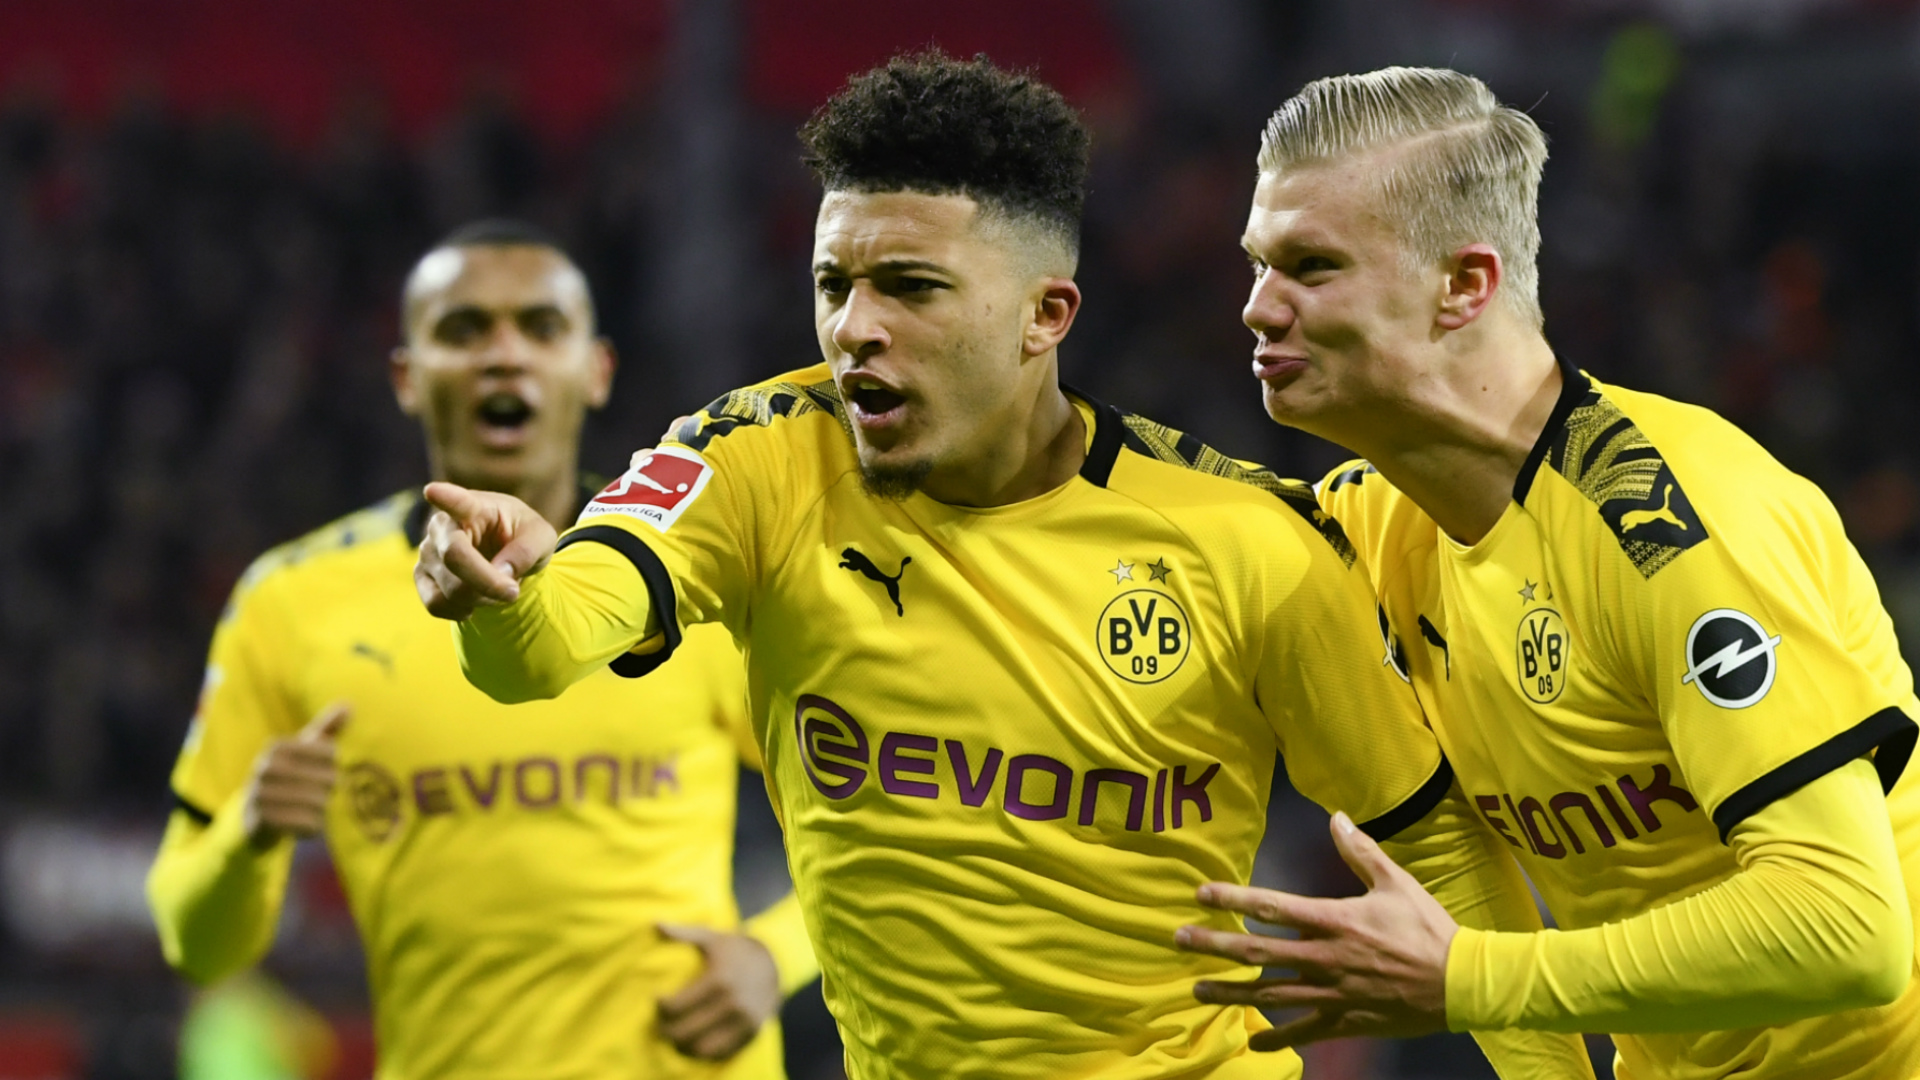 Borussia Dortmund vs Paris Saint-Germain: How to watch on TV in UK & U.S., live stream, kick-off time